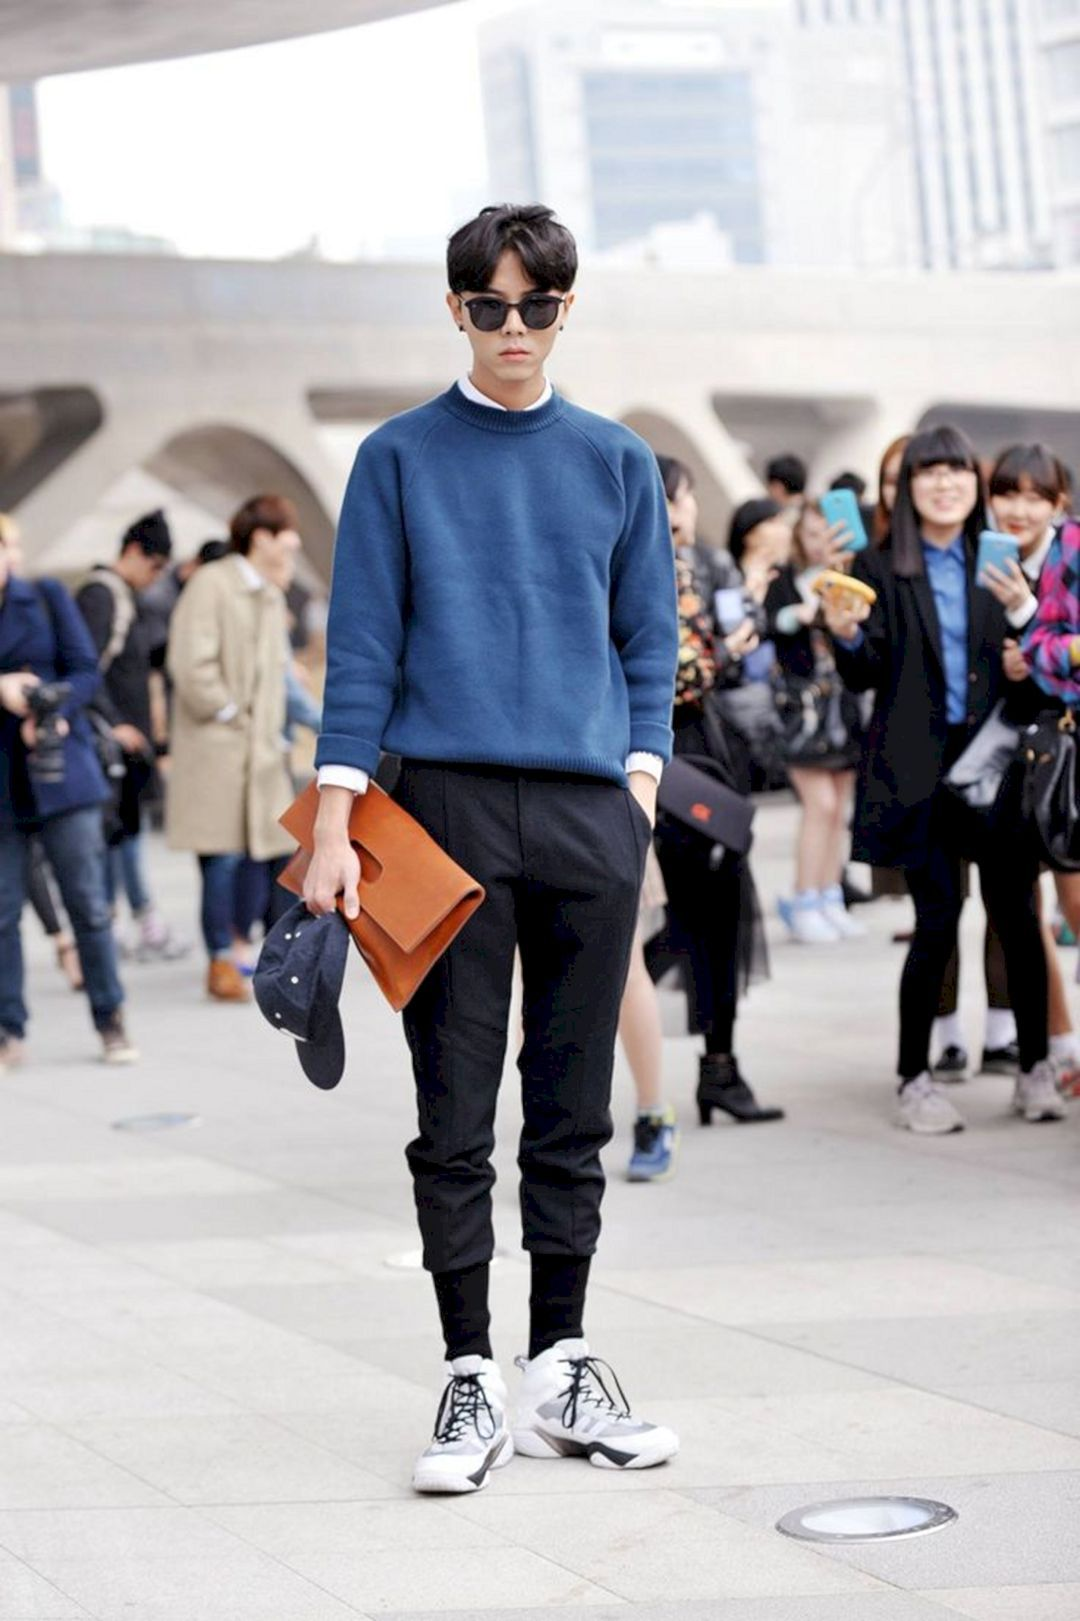 7 Incredible Korean Men Fashion Style Ideas To Steal The Look